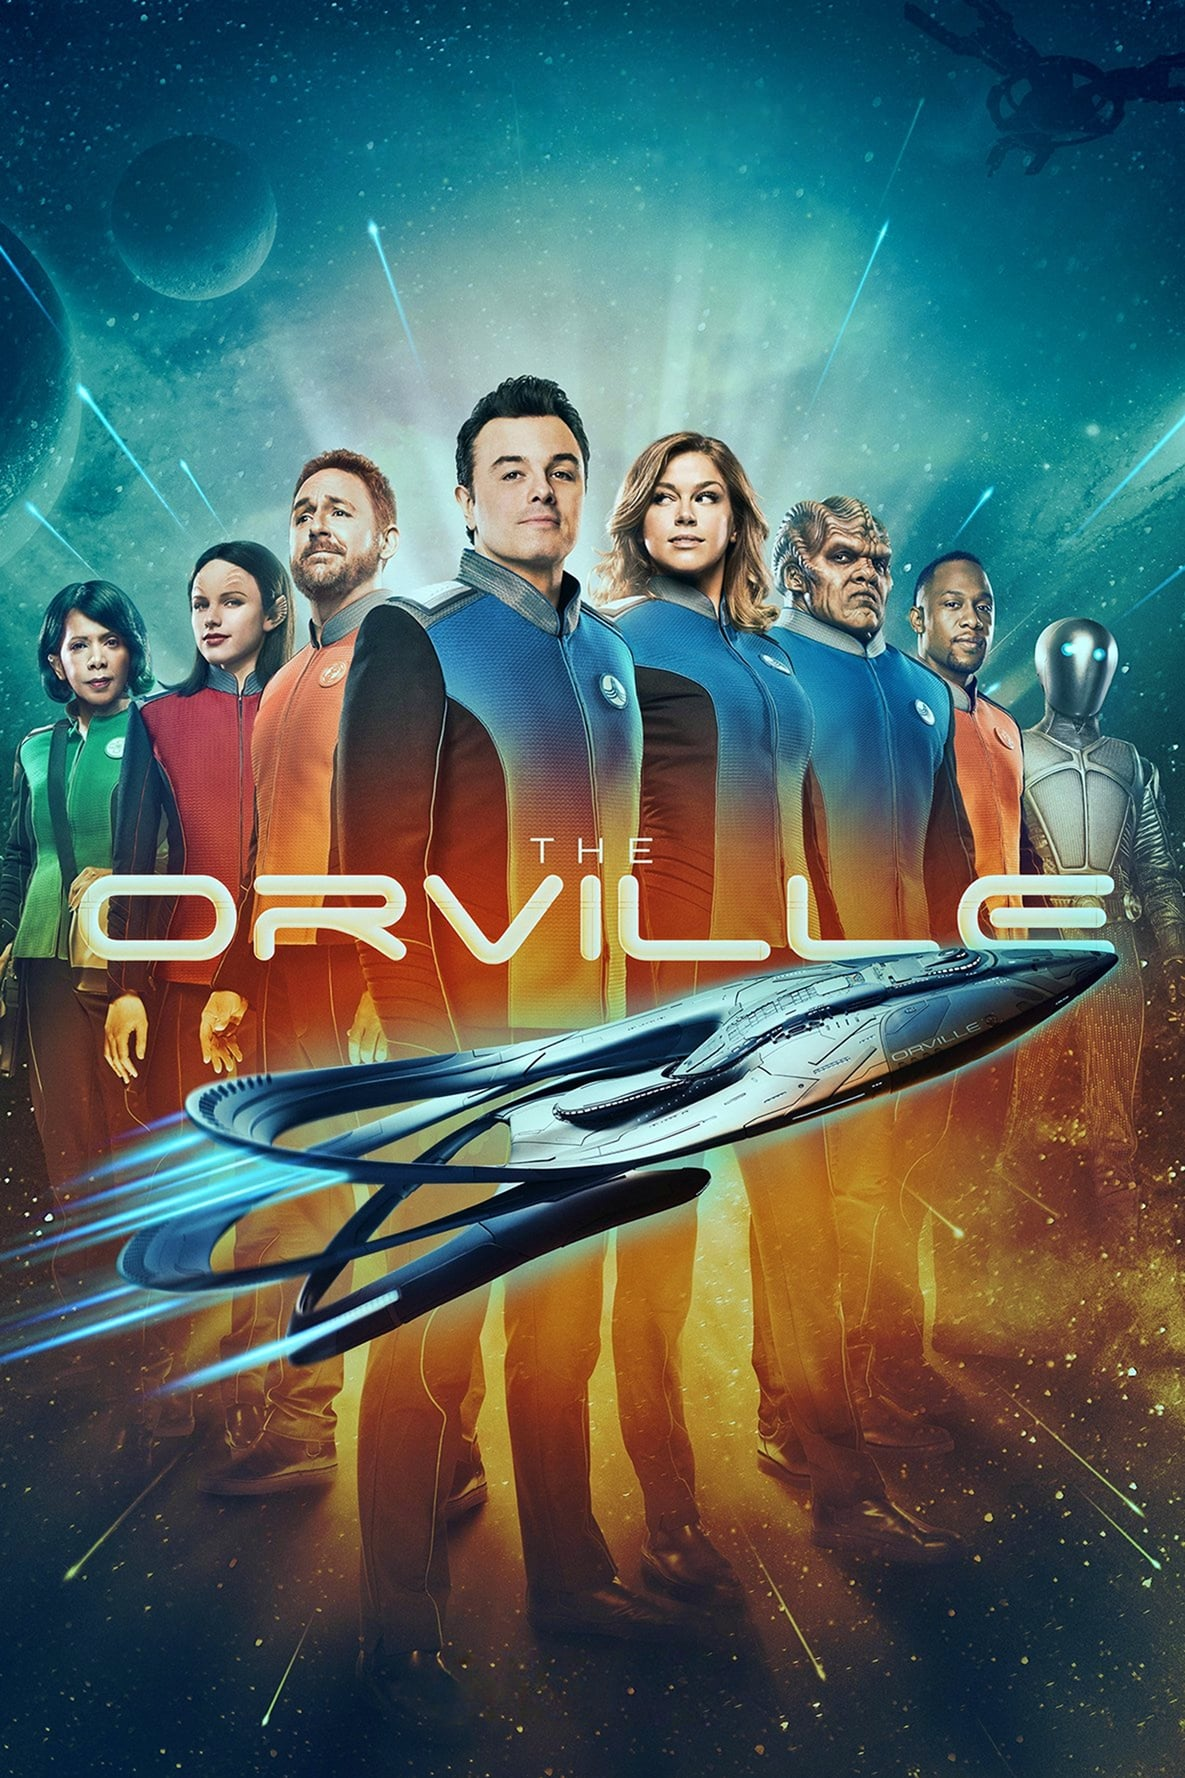 image for The Orville